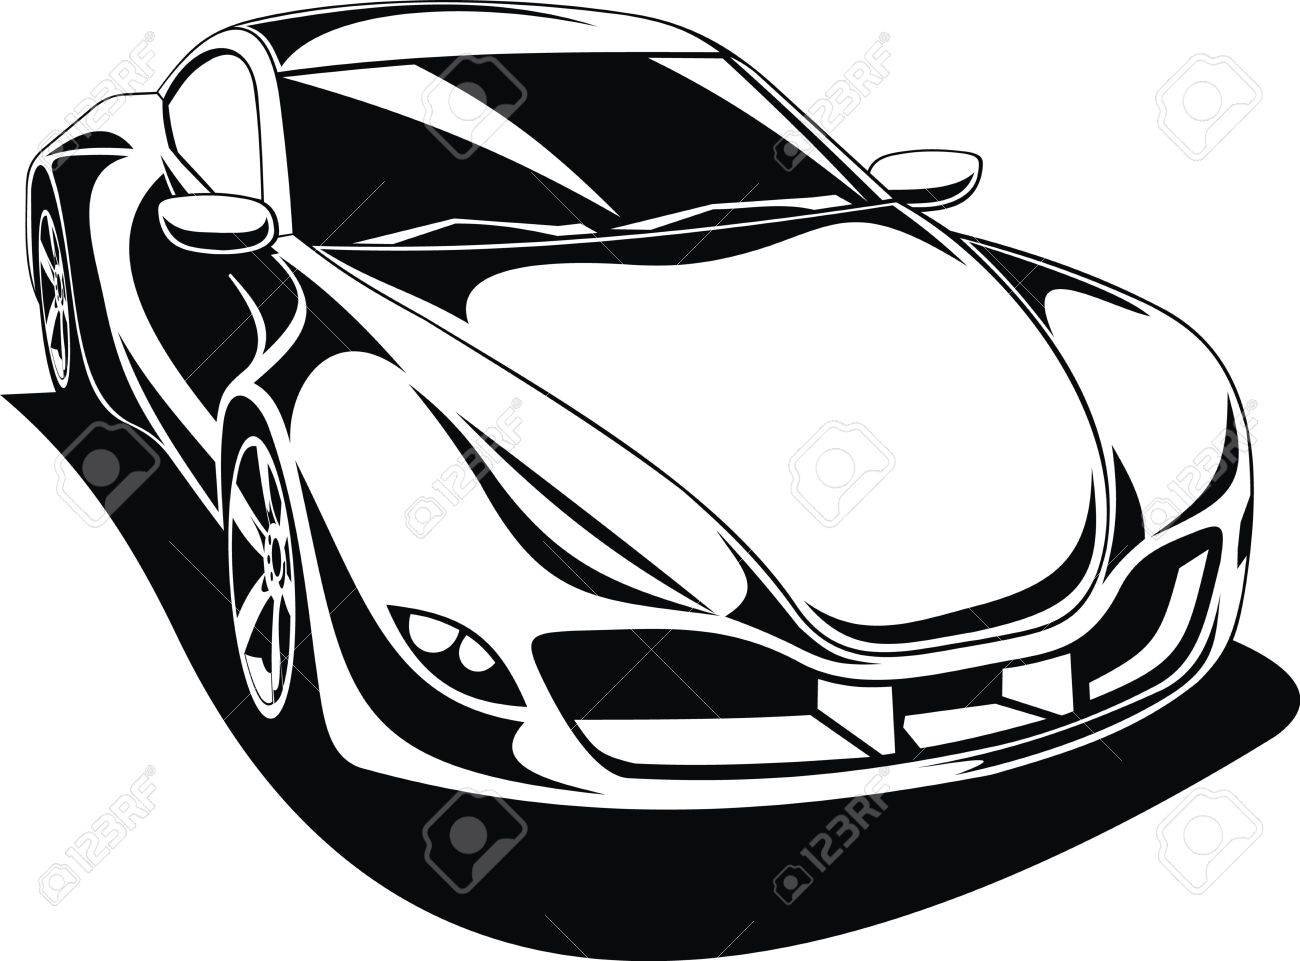 1300x961 My Original Sport Car Design In Black And White Royalty Free